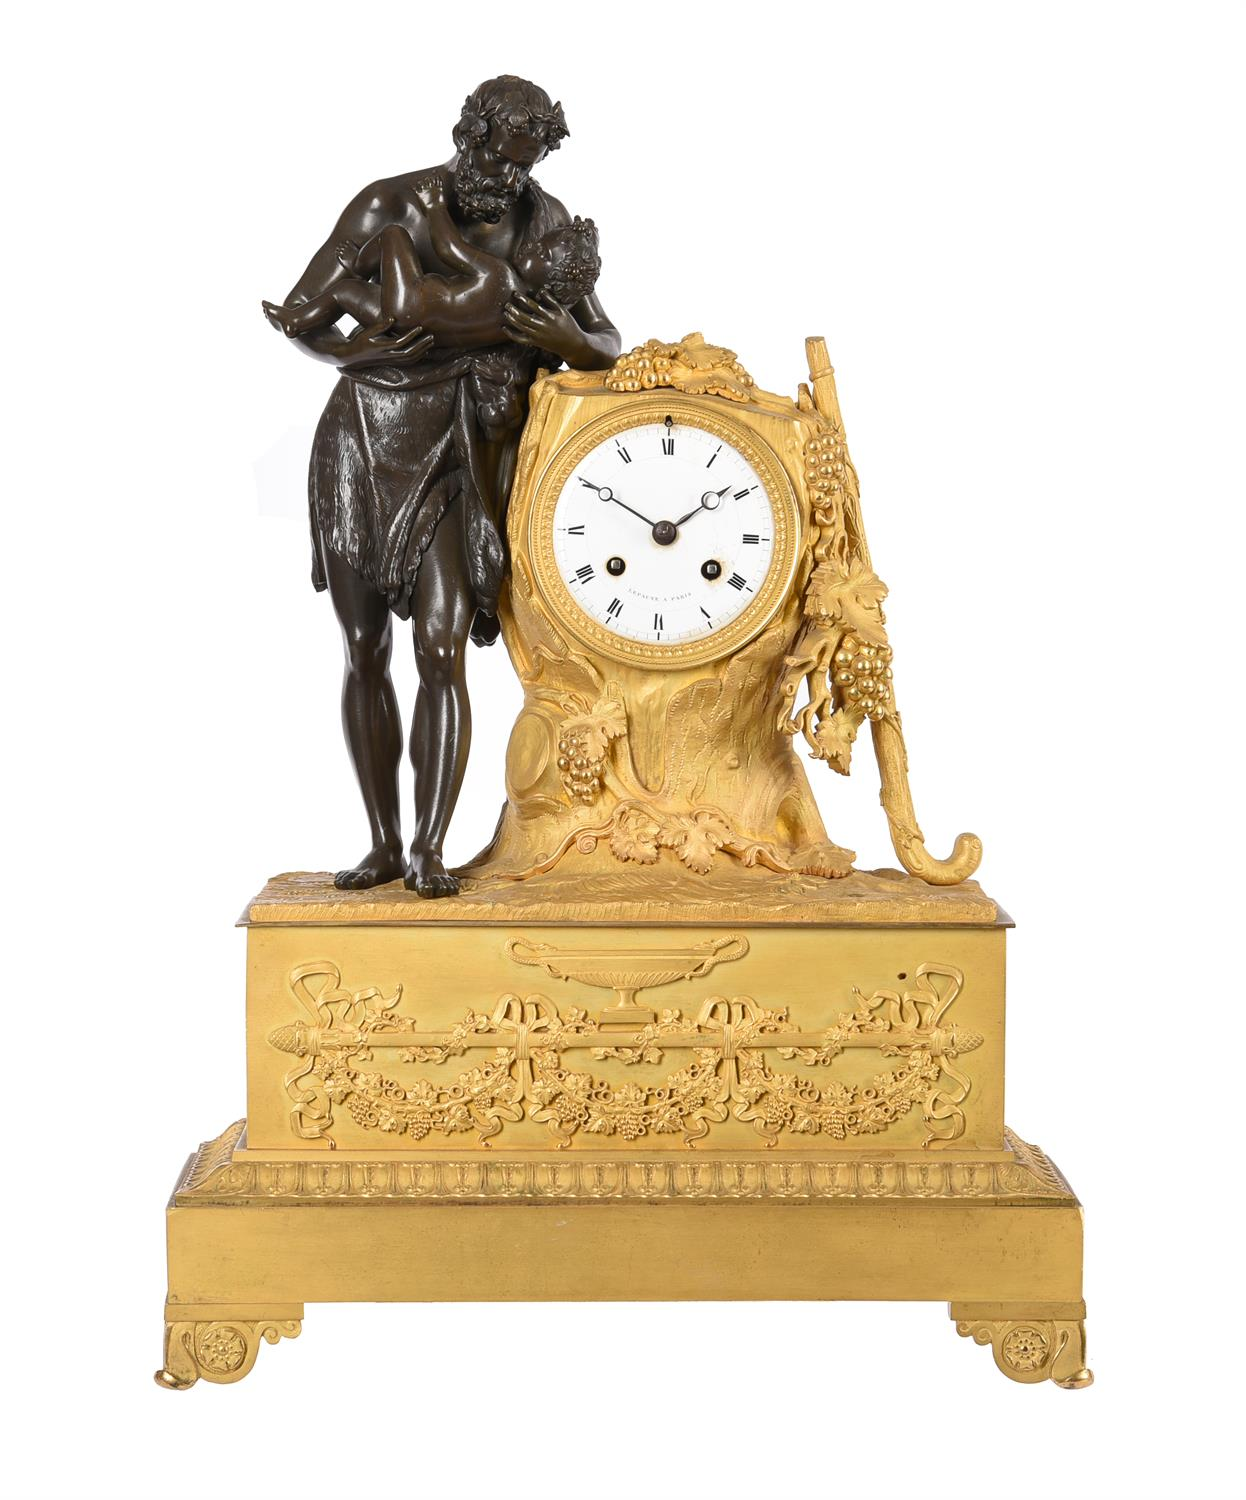 A French Empire Ormolu and patinated bronze figural mantel clock